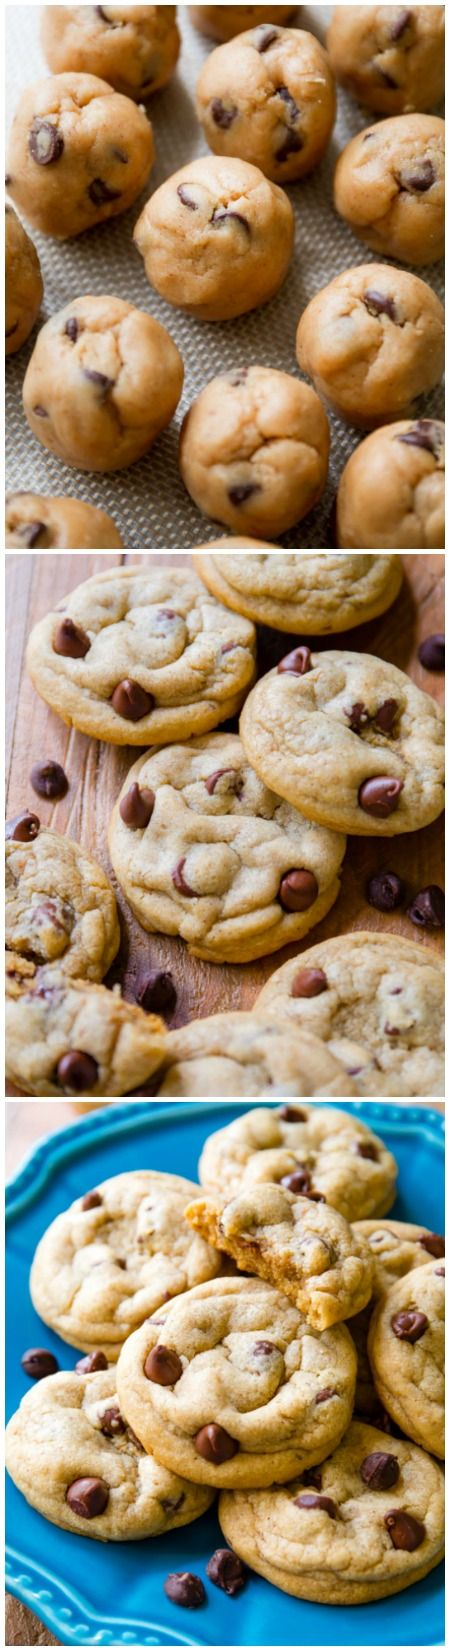 Add Biscoff spread to these soft, thick, and chewy cookies and they are on a whole other level!!!